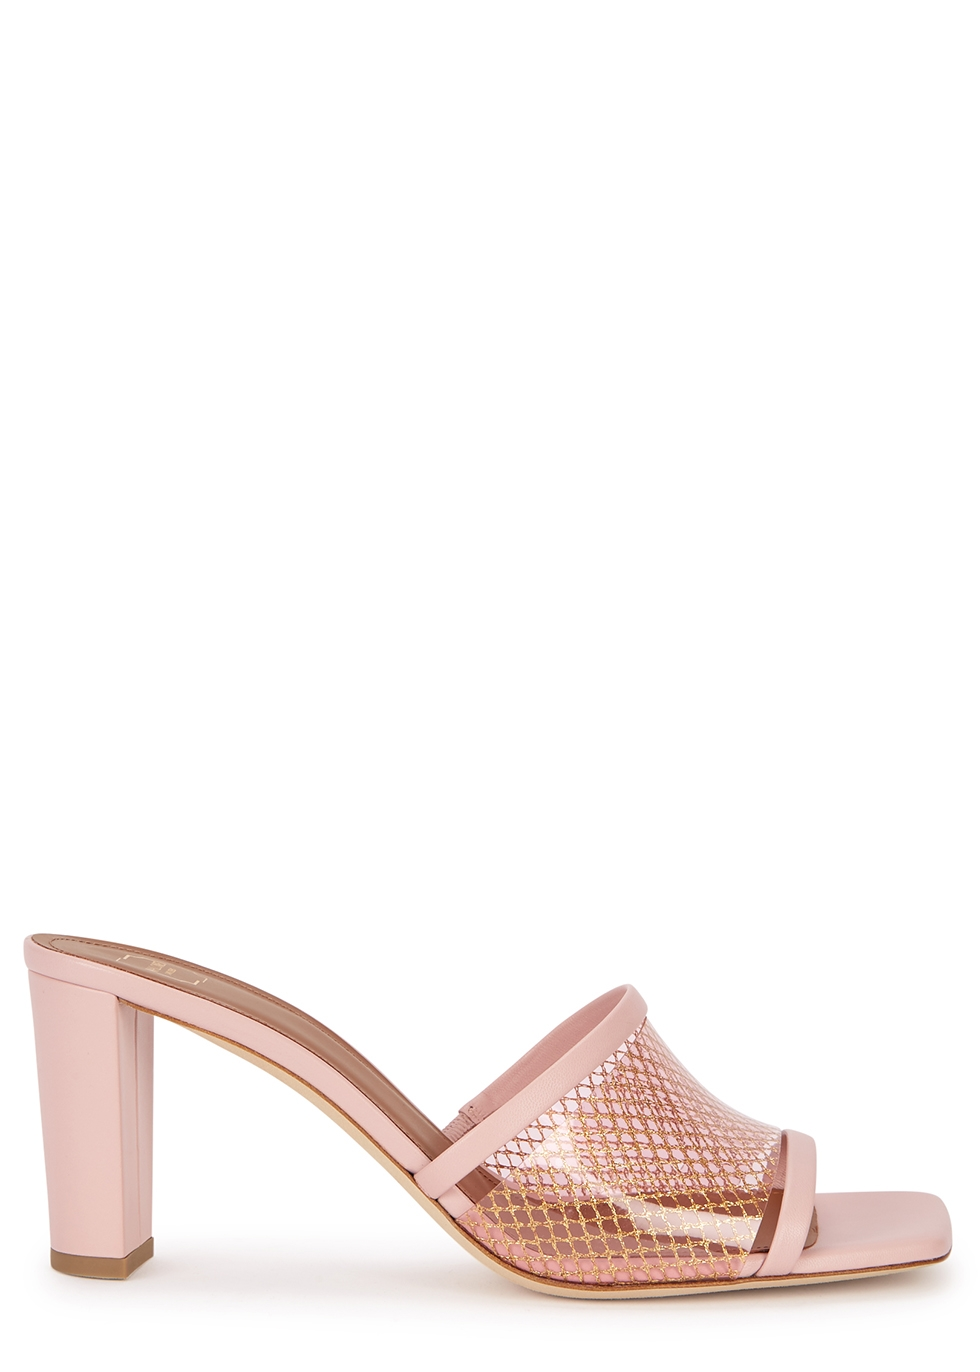 Demi 70 pink leather mules